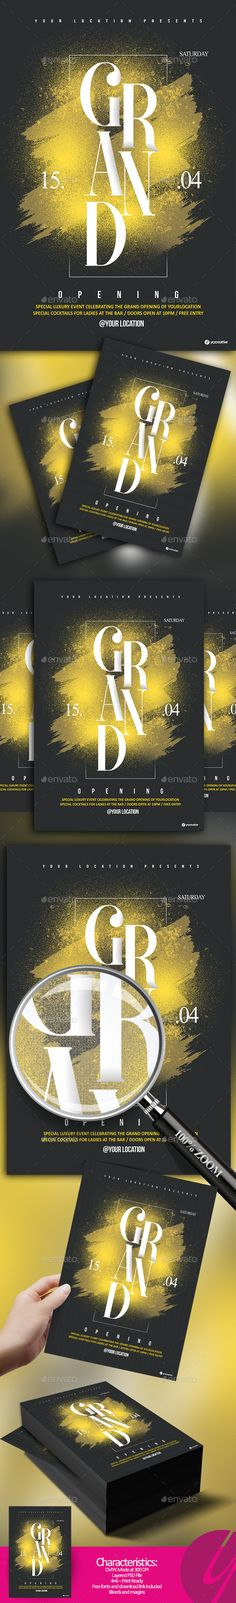 Grand Opening Flyer — Photoshop PSD #flyer • Download ➝ https://graphicriver.net/item/grand-opening-flyer/19711244?ref=pxcr